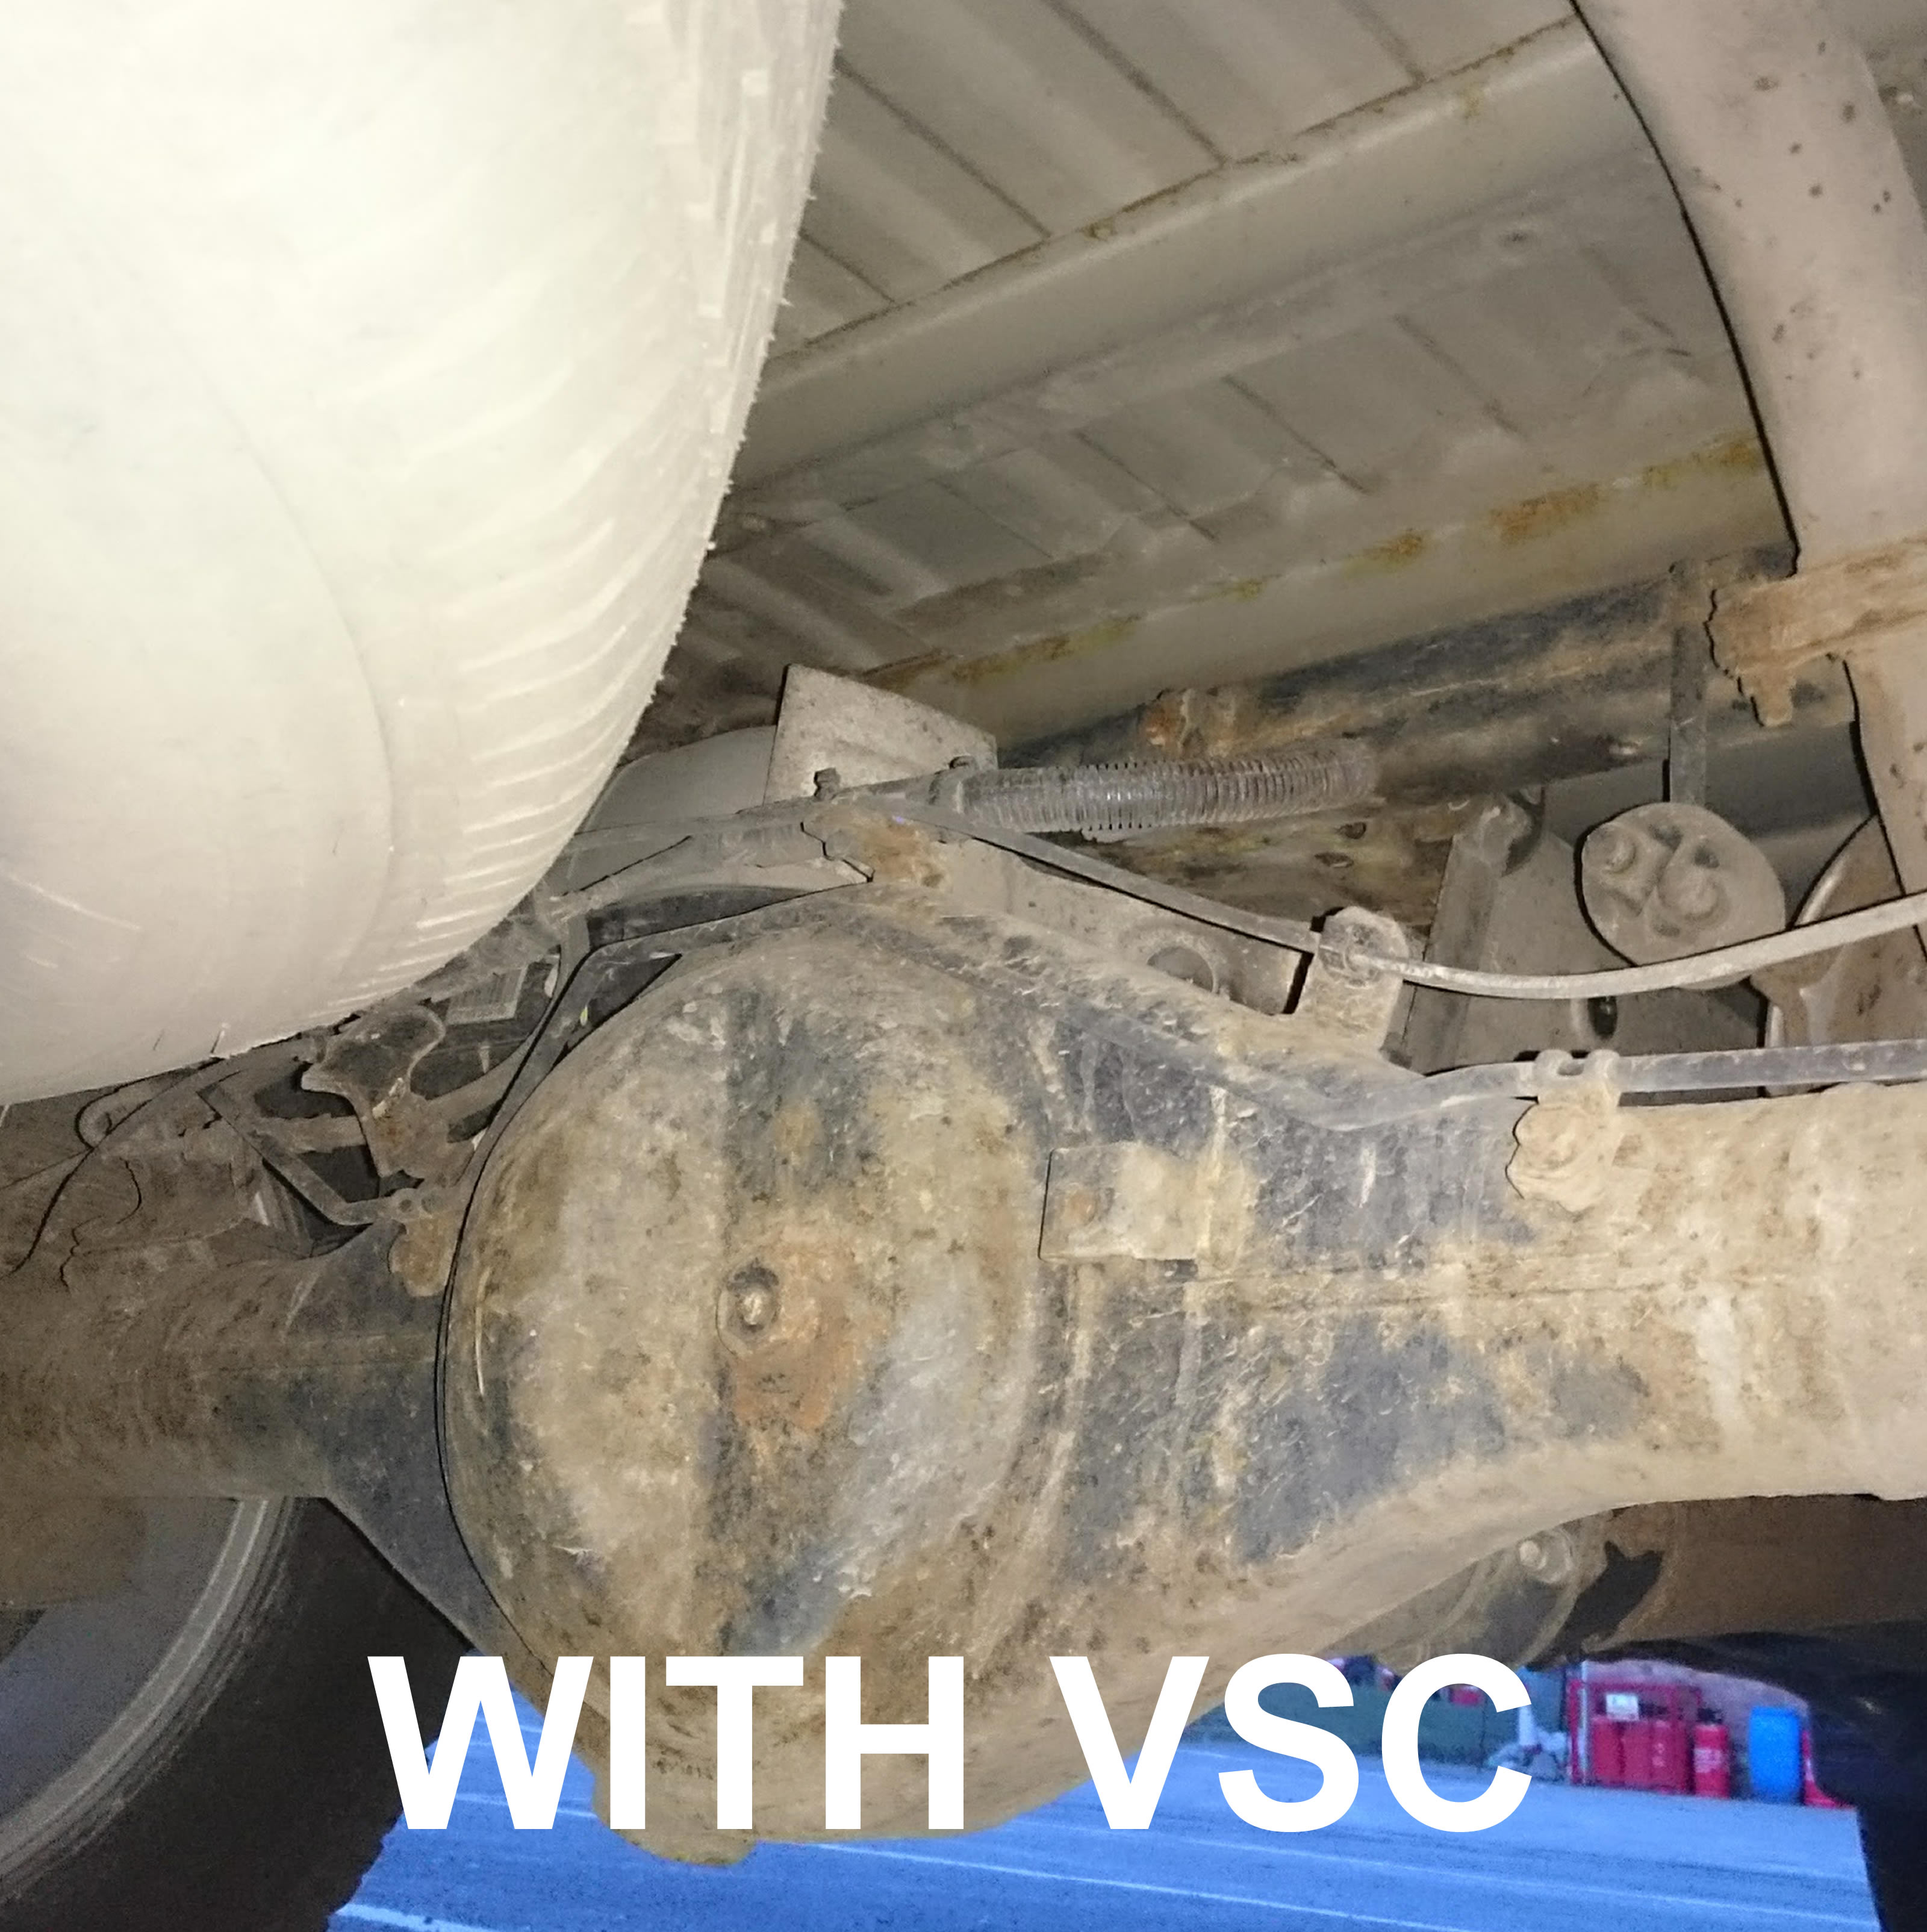 What Is Vsc | Best Upcoming Cars Reviews